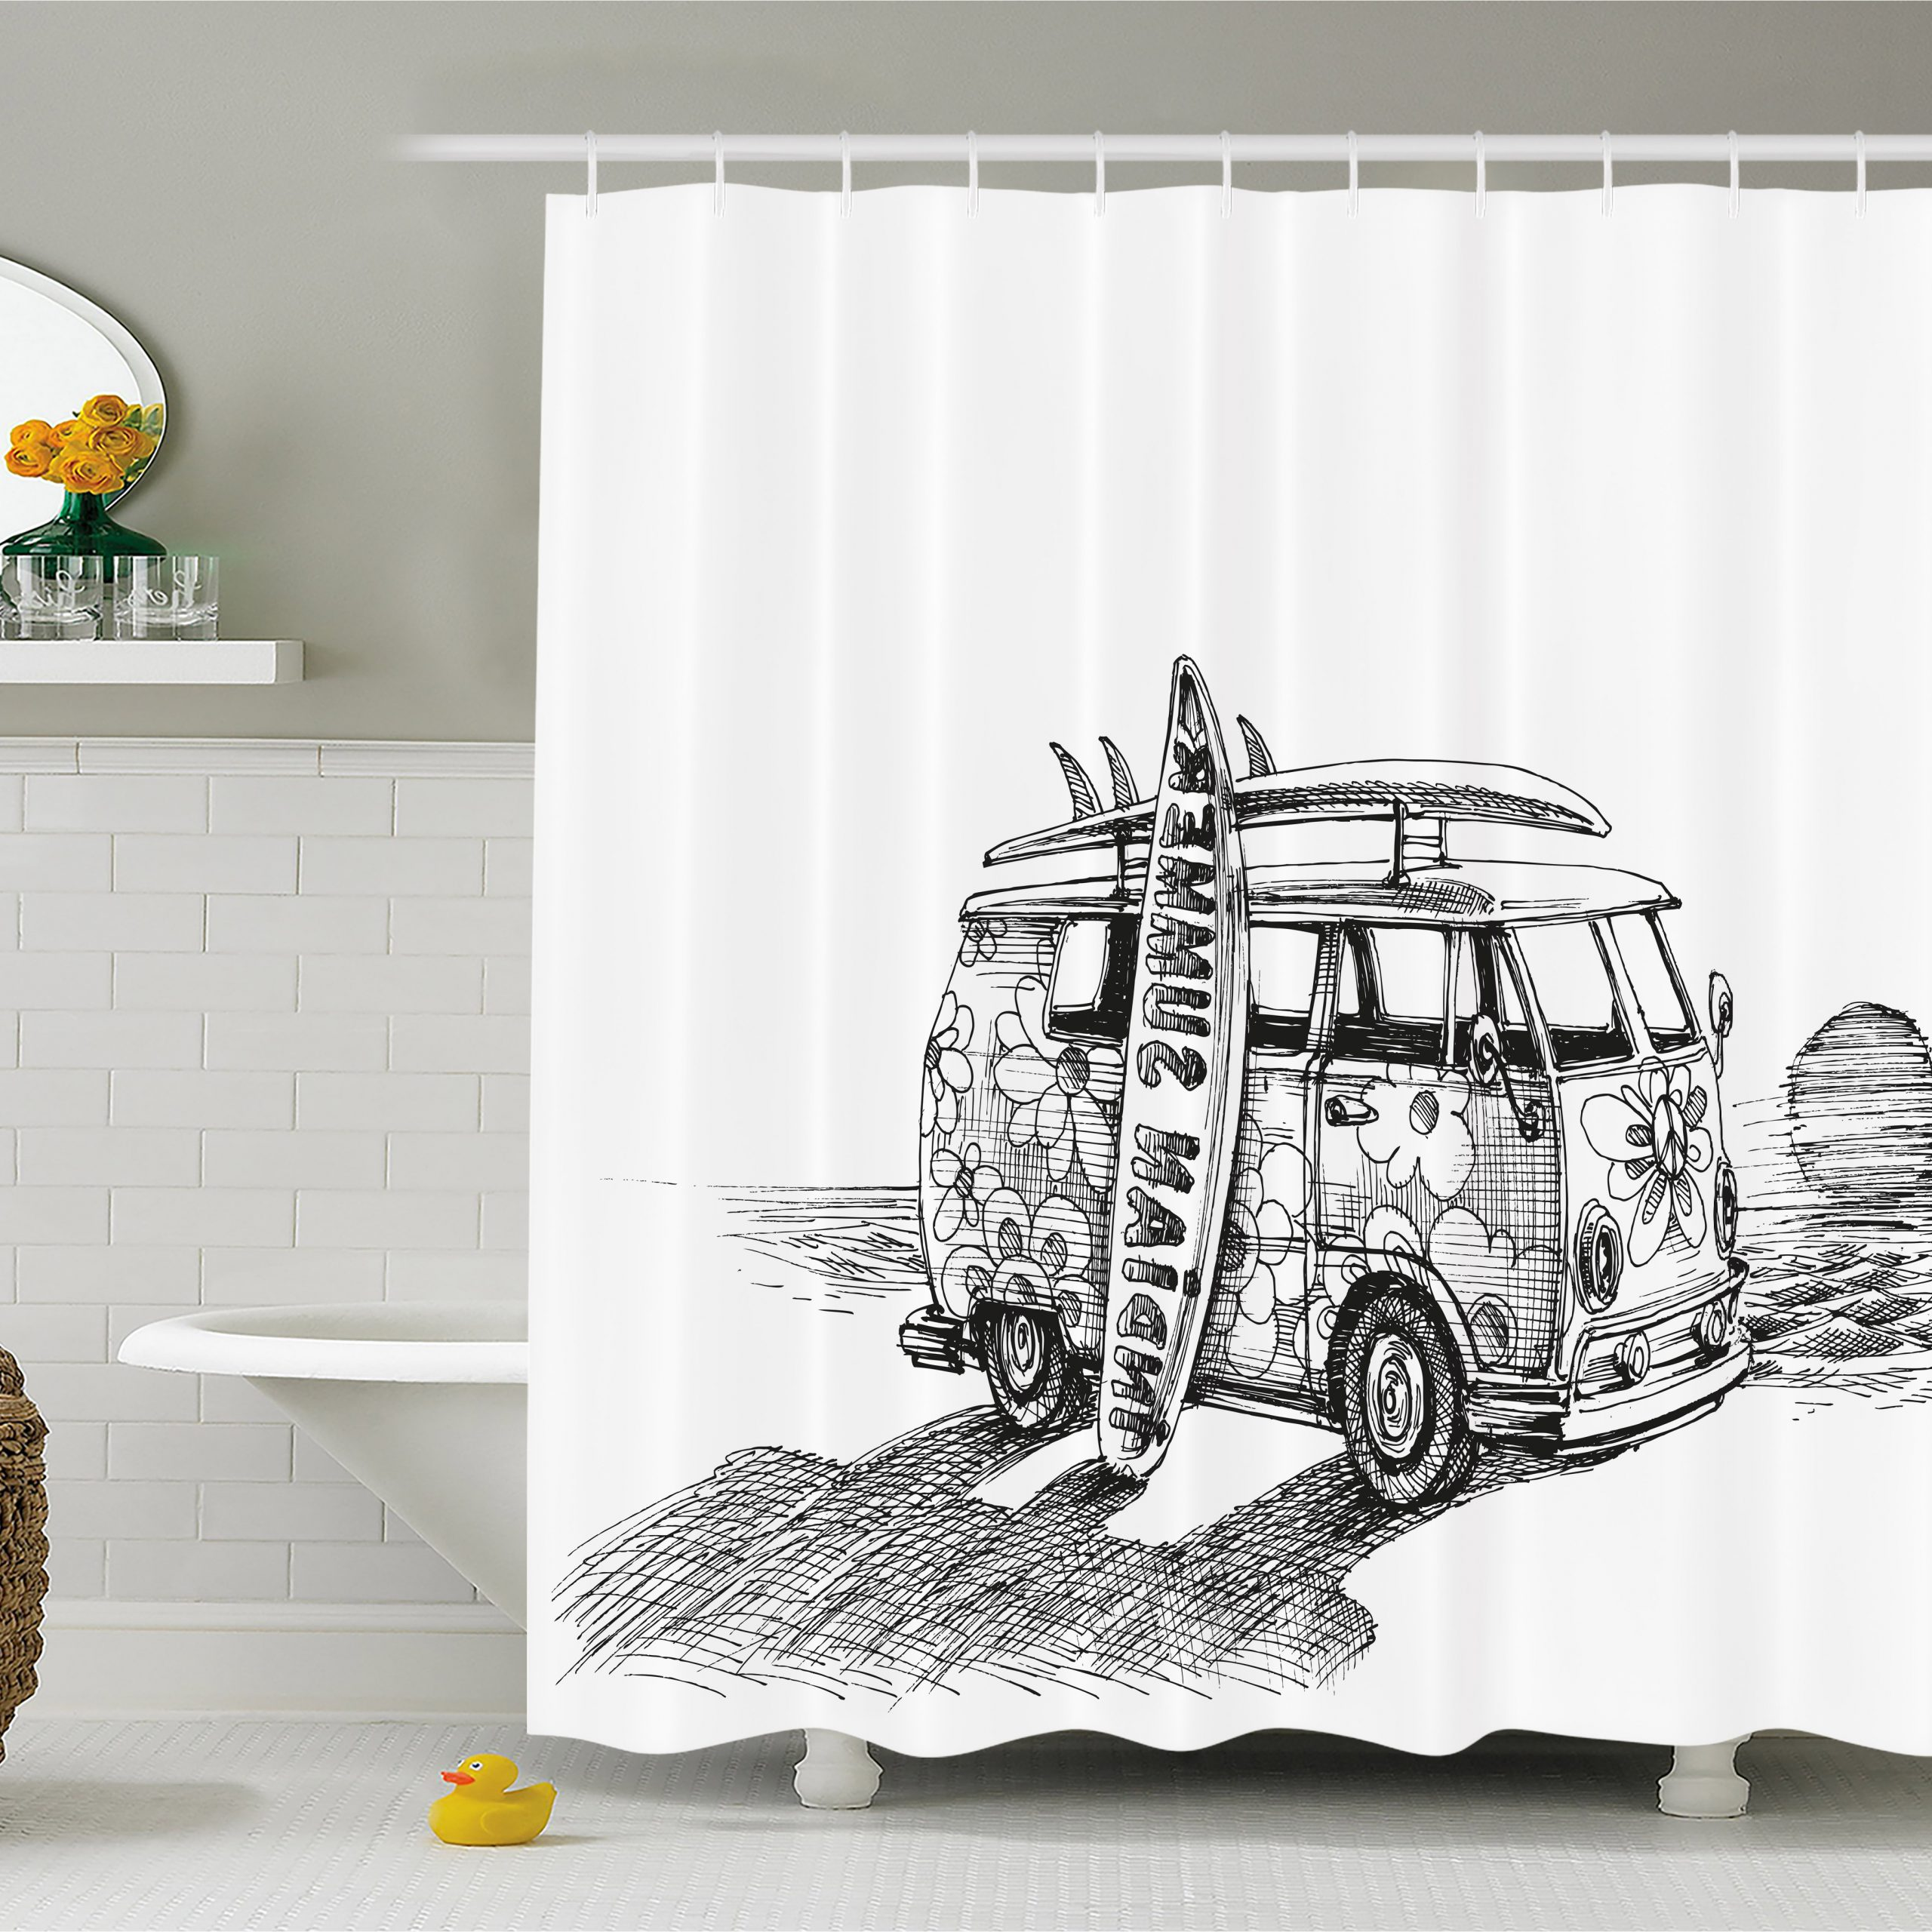 Vintage Sea Shore All Over Printed Window Curtains Pertaining To Preferred Sketchy Shower Curtain, Hot Summer Californian Surfing Vintage Car Sea Shore Beach Art, Fabric Bathroom Set With Hooks, Black White And Charcoal Grey, (View 12 of 20)